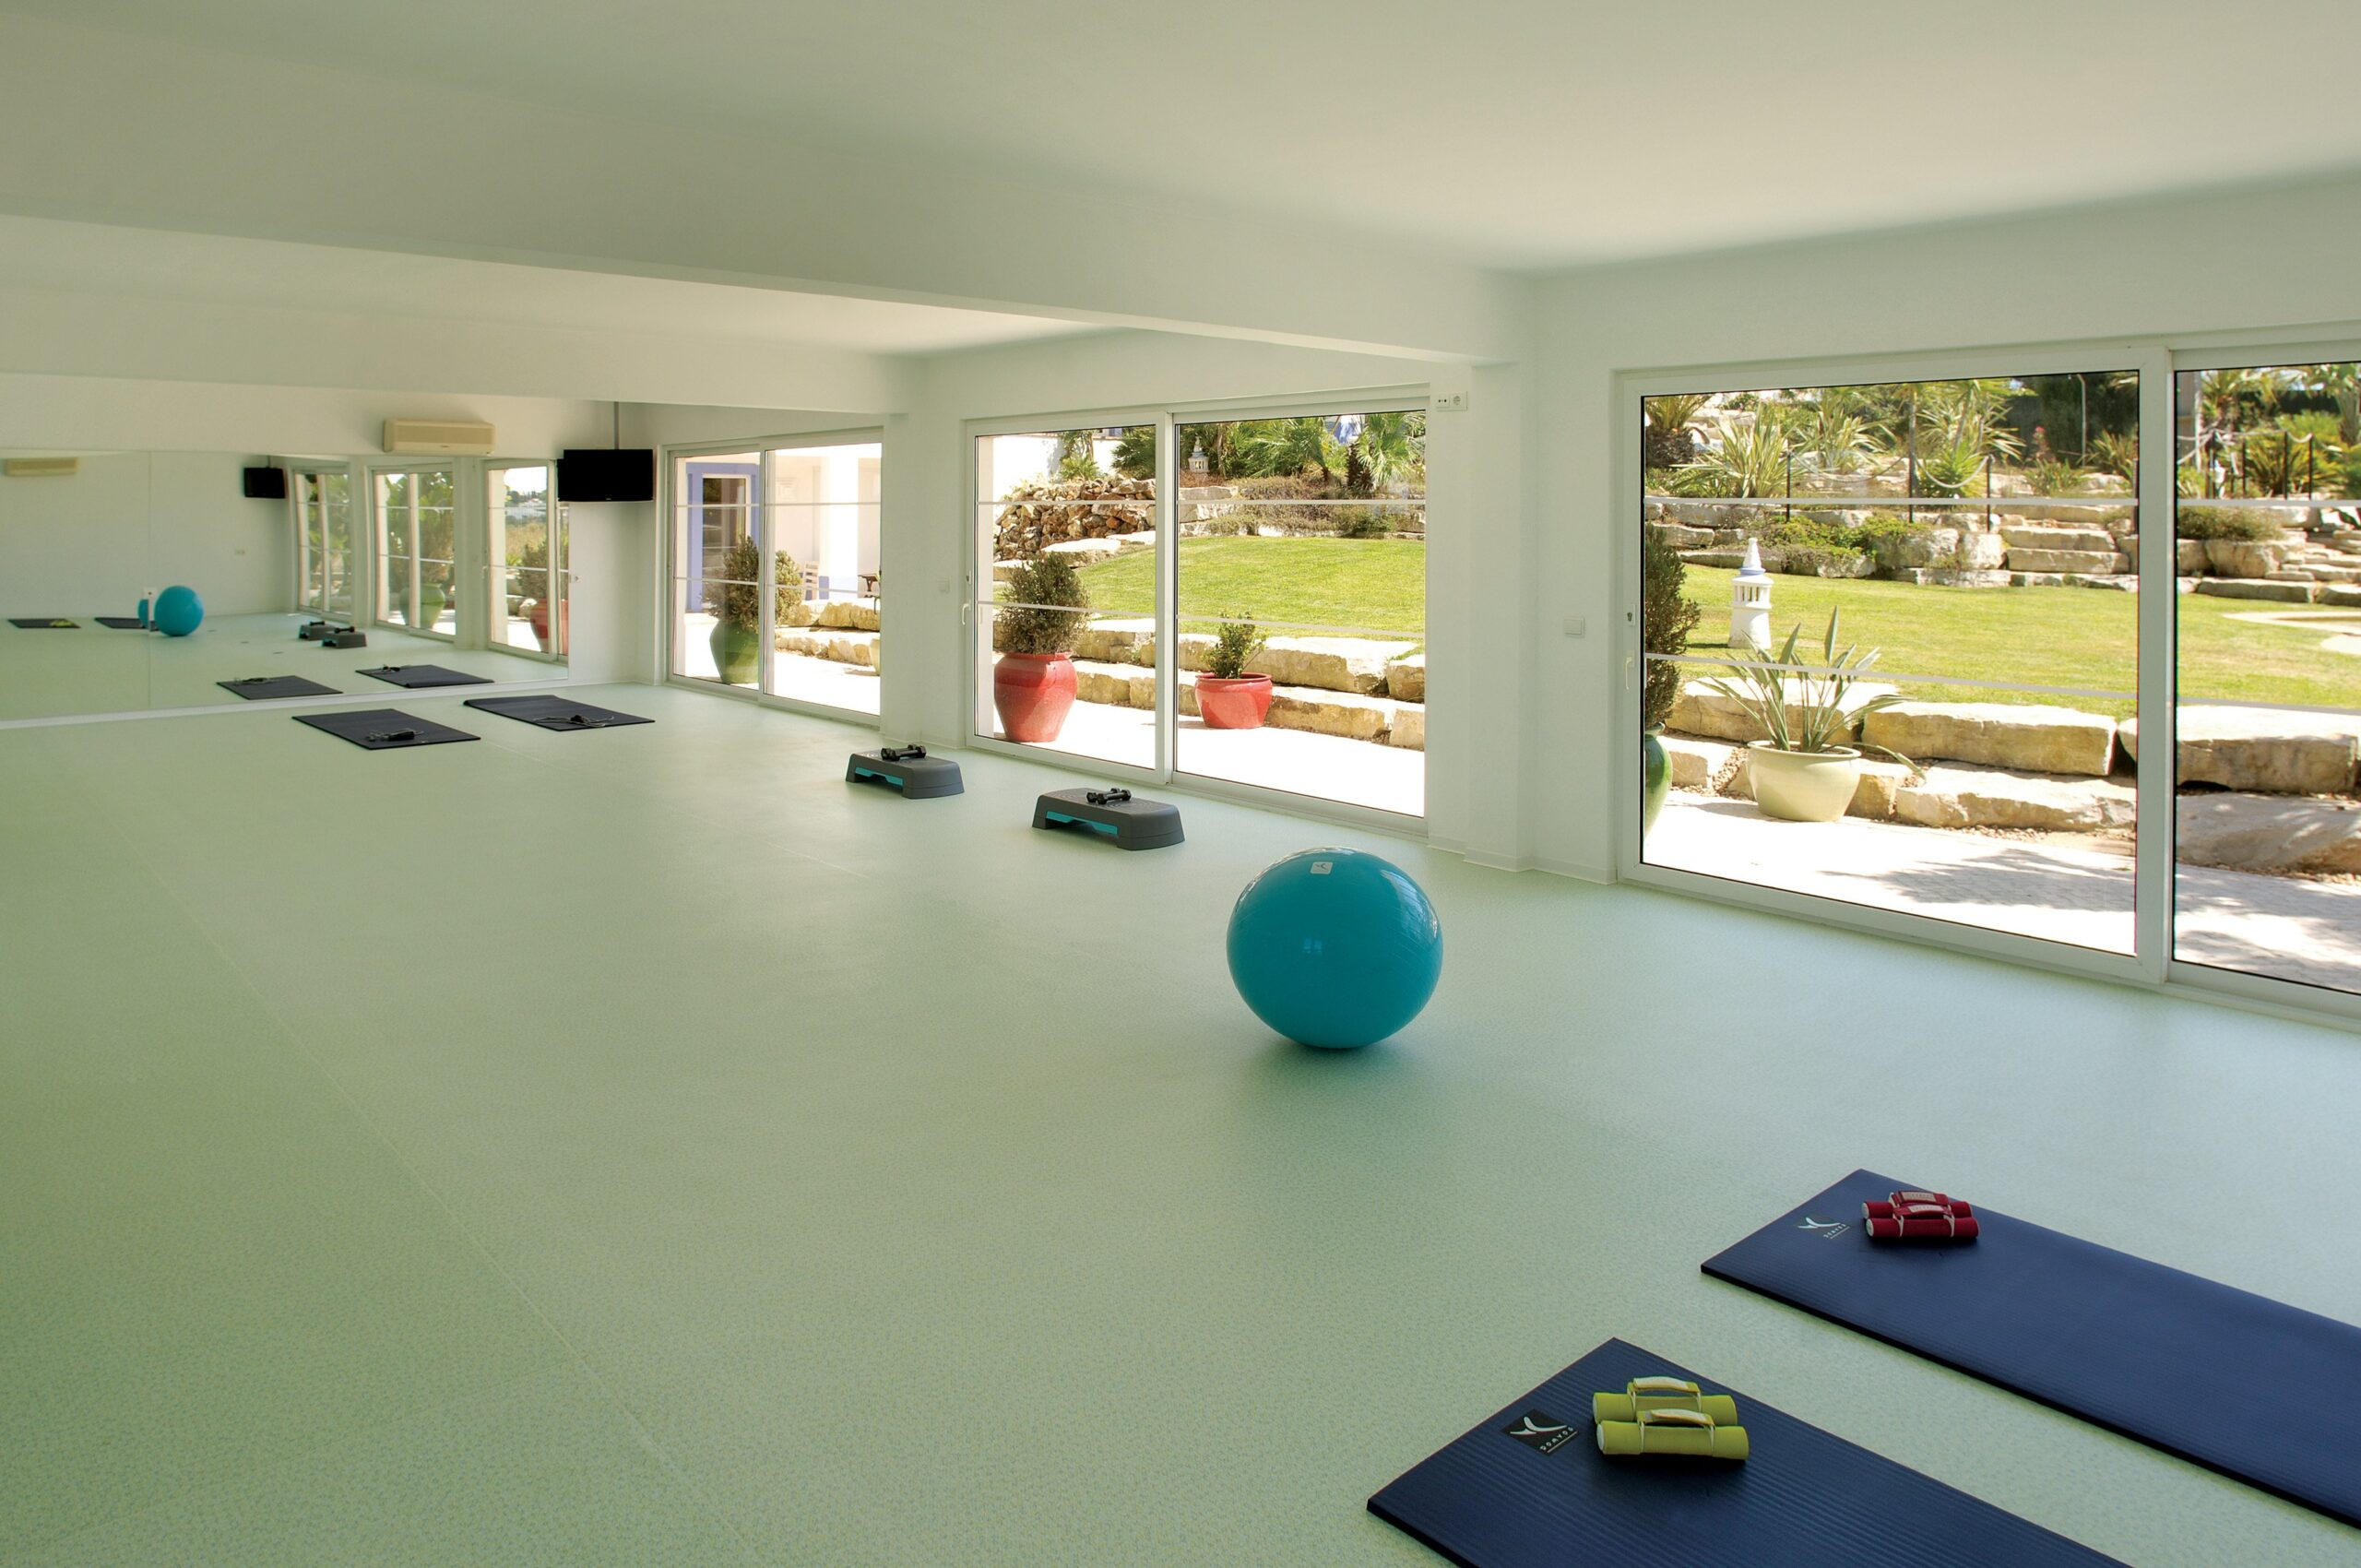 3.Portugal Boot Camp Abroad – Gym